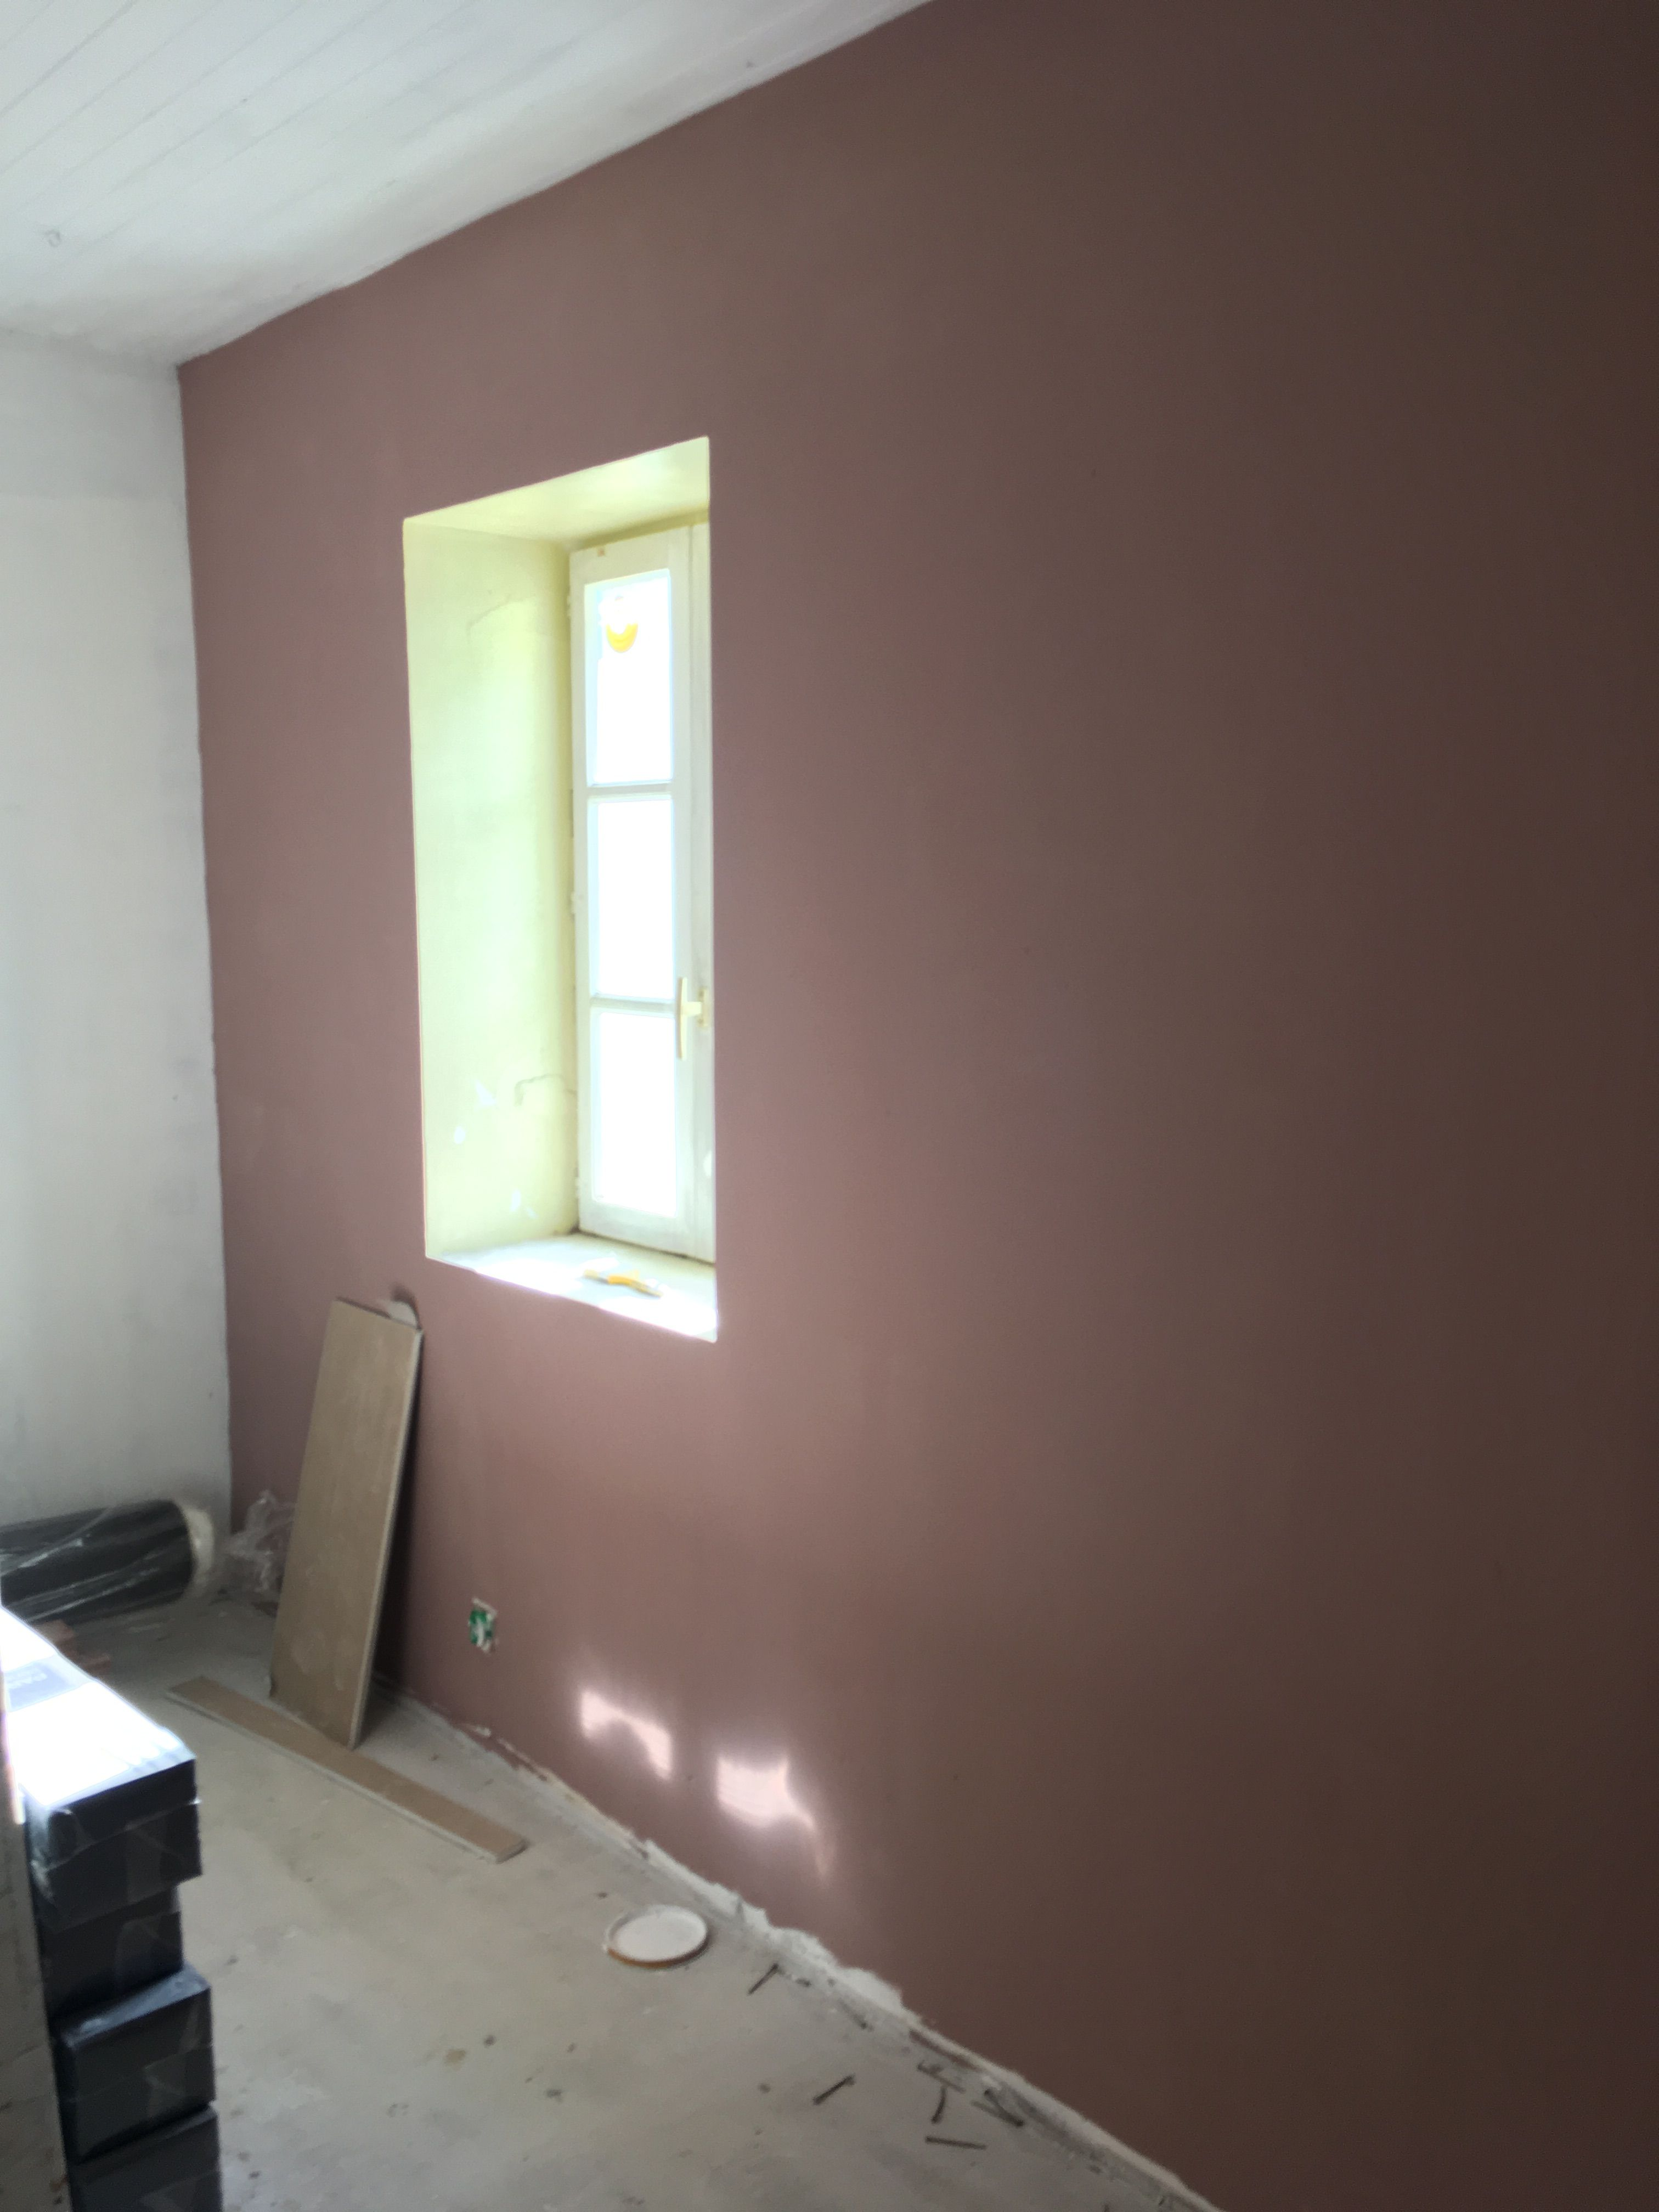 Esmee S Room Colour Farrow And Ball Sulking Room Pink Stylish Bedroom Room Colors Blue Living Room